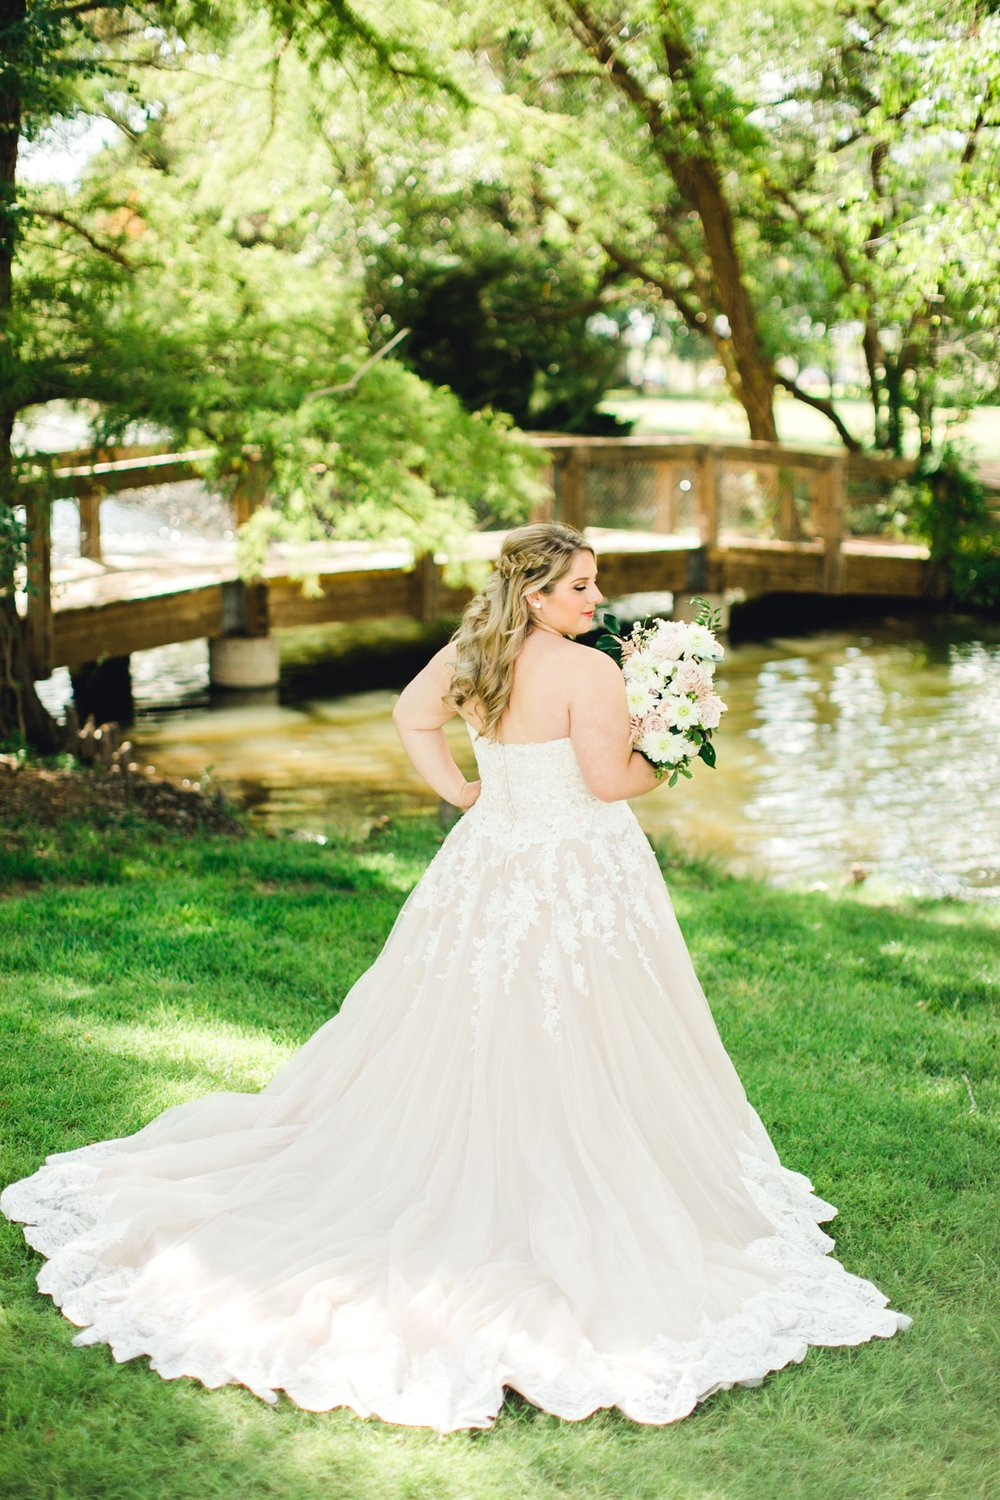 SARAH_AND_GEOFFREY_SHARP_SPIRIT_RANCH_WEDDING_ALLEEJ_LUBBOCK_TX_0025.jpg